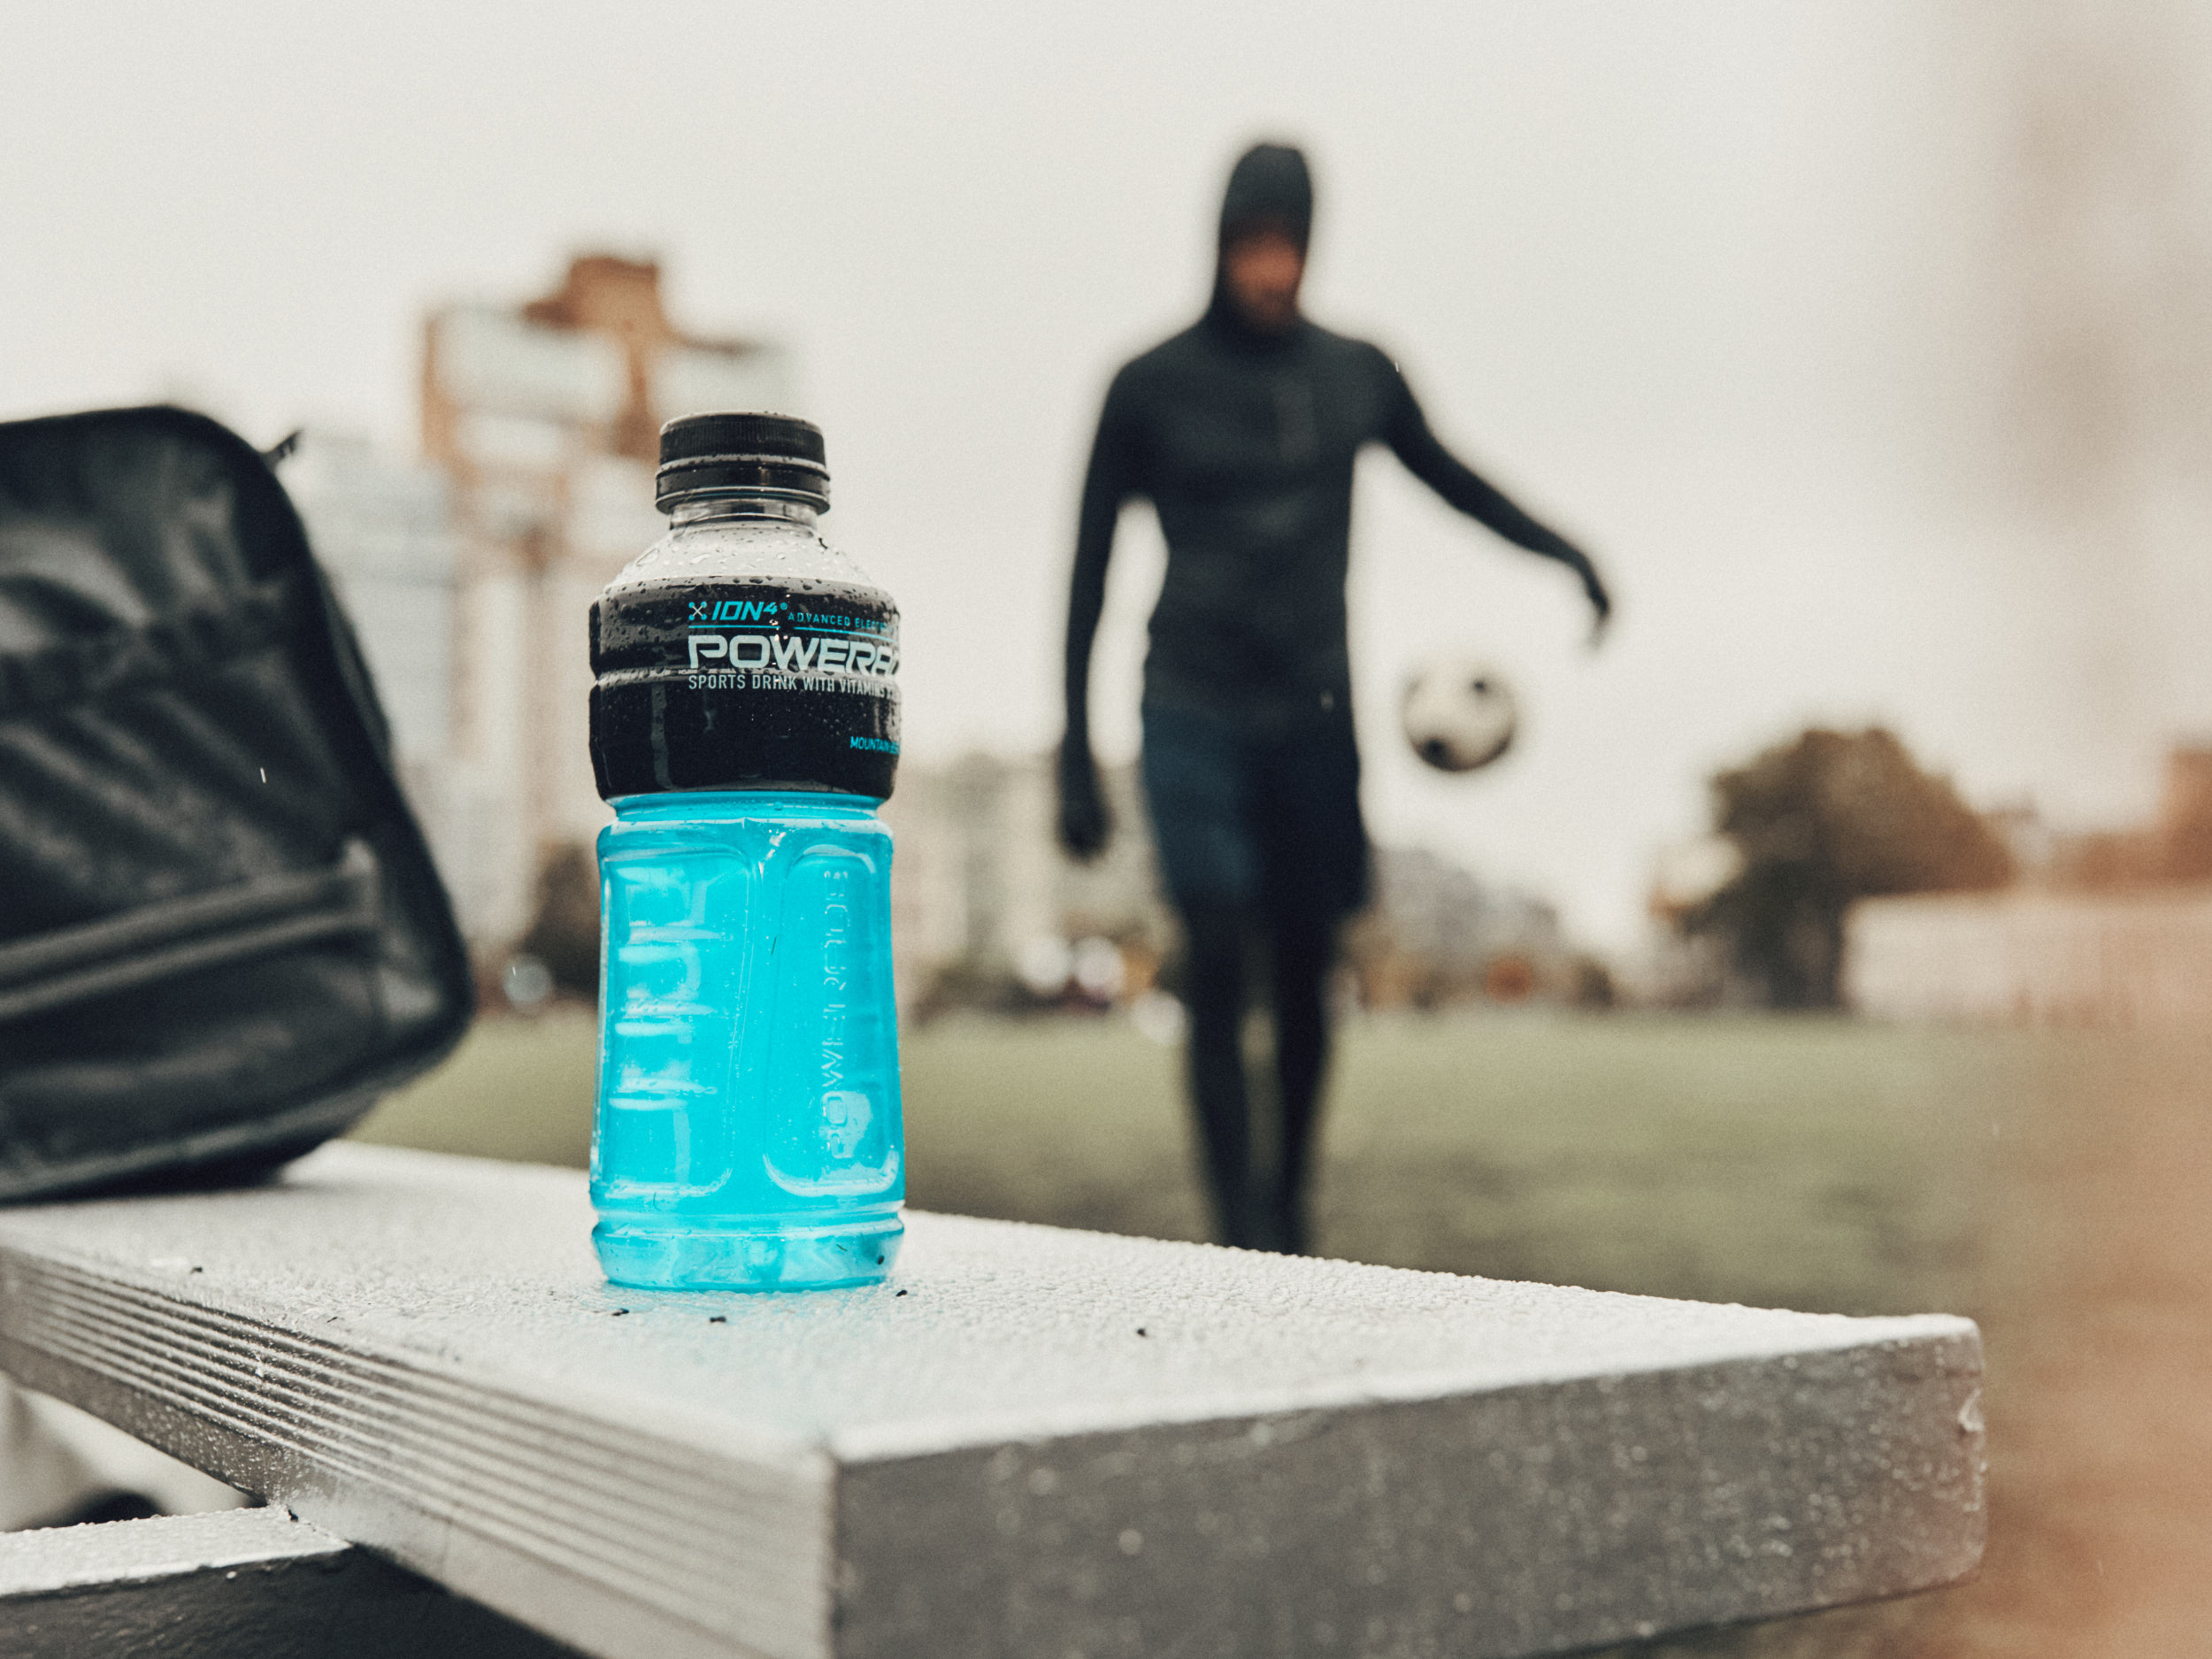 Web-Jeff-Allen-Coca-Cola-161026-Health-Wellness-NYC-JA_161027_10_SOCCER_POWERADE_151